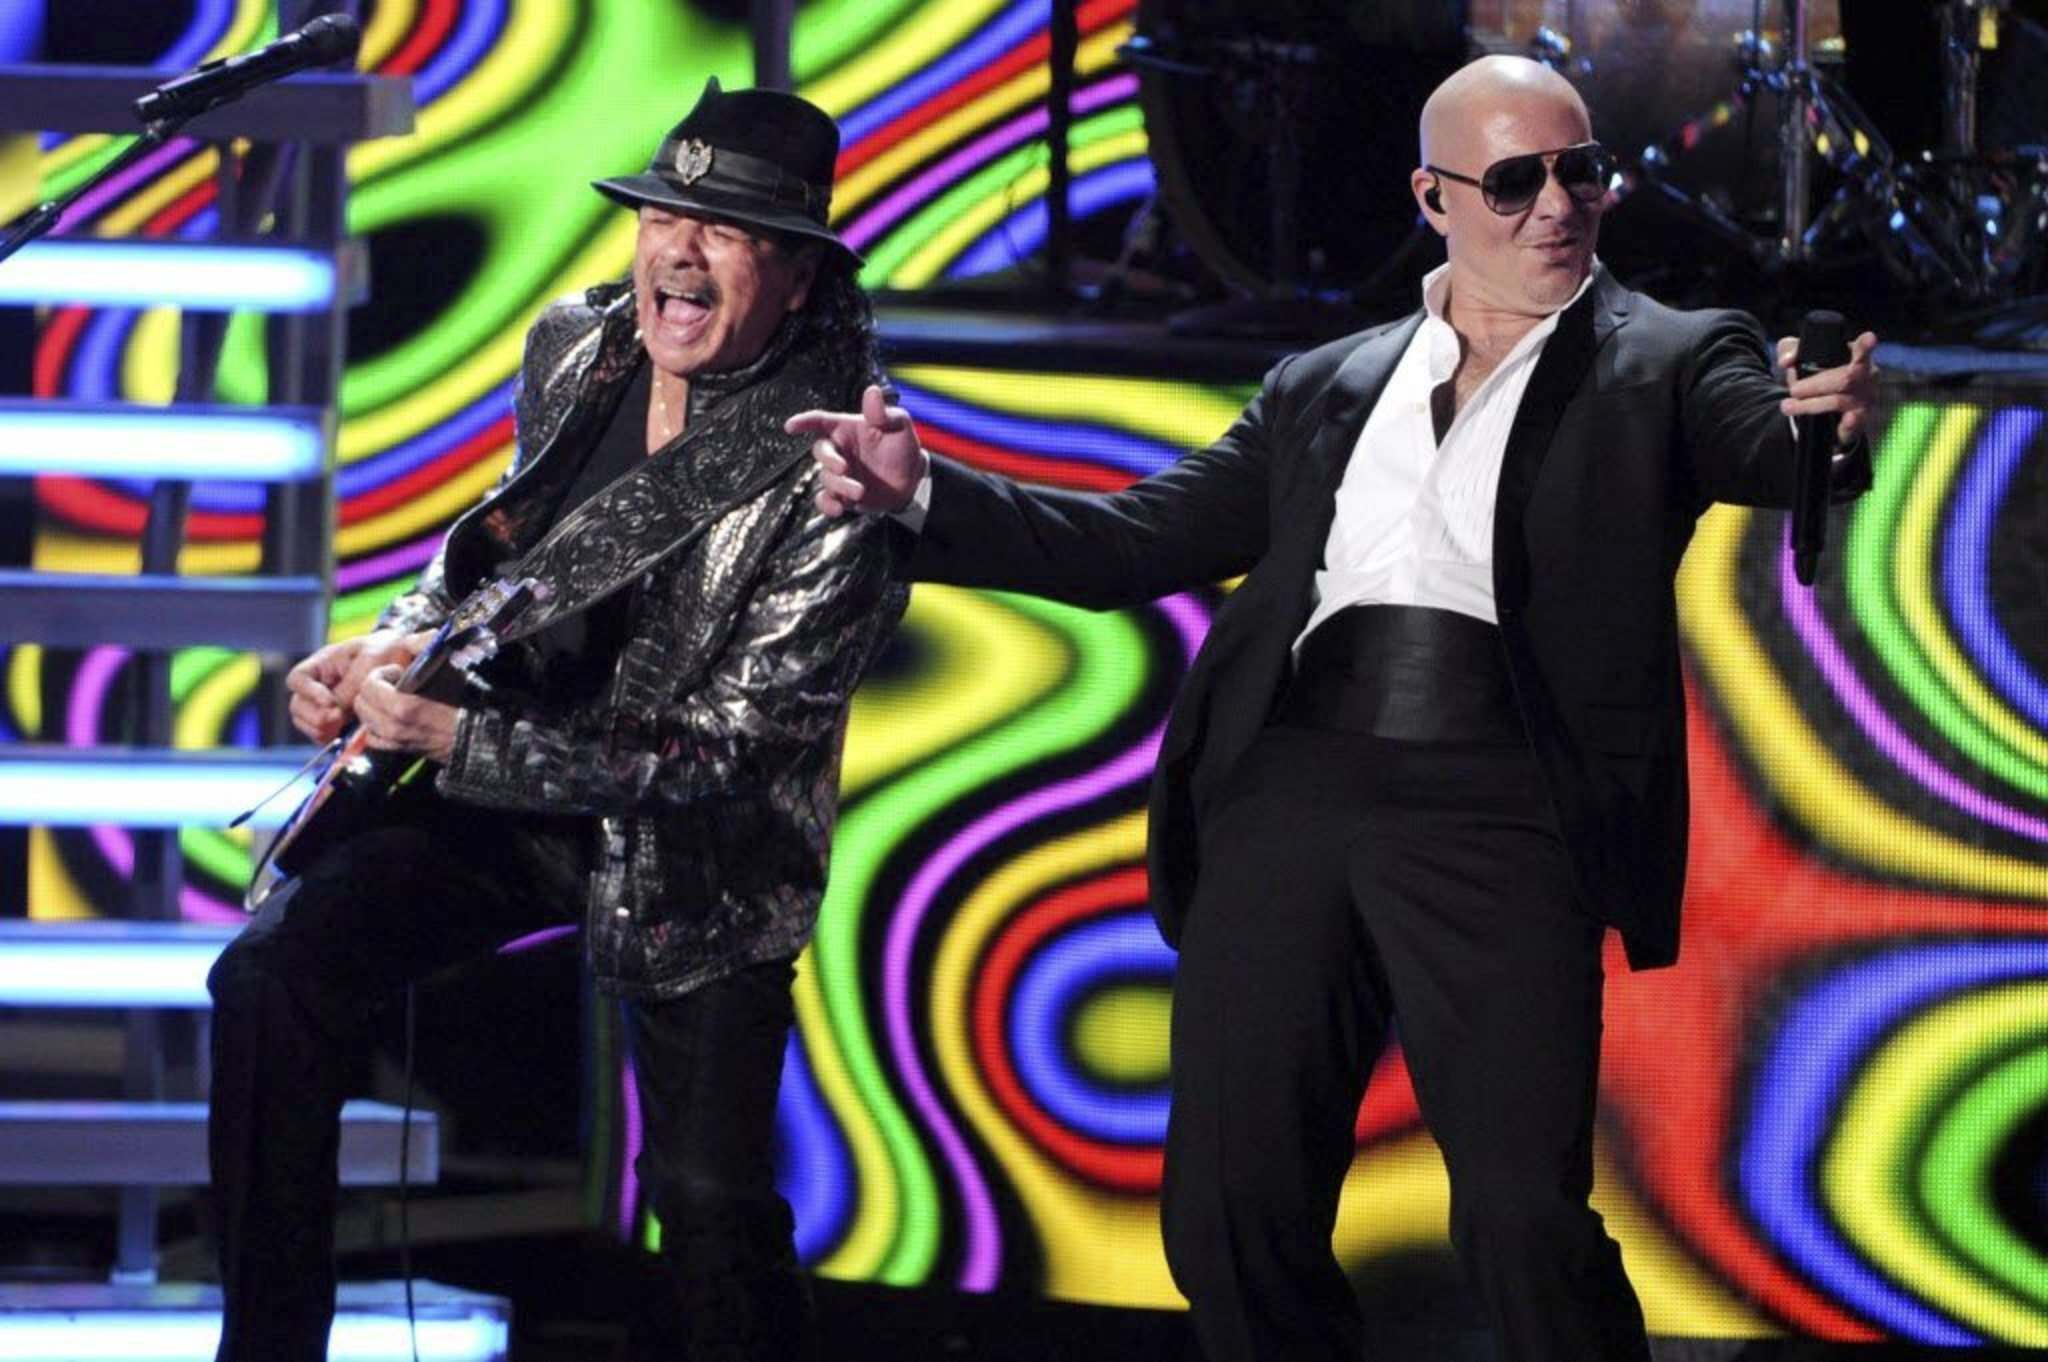 <p>Carlos Santana (left) teamed up with Pitbull in 2014 on a track called Oye. It&rsquo;s one of several collaborative efforts the mercurial guitarist has undertaken with less than stellar results.</p>